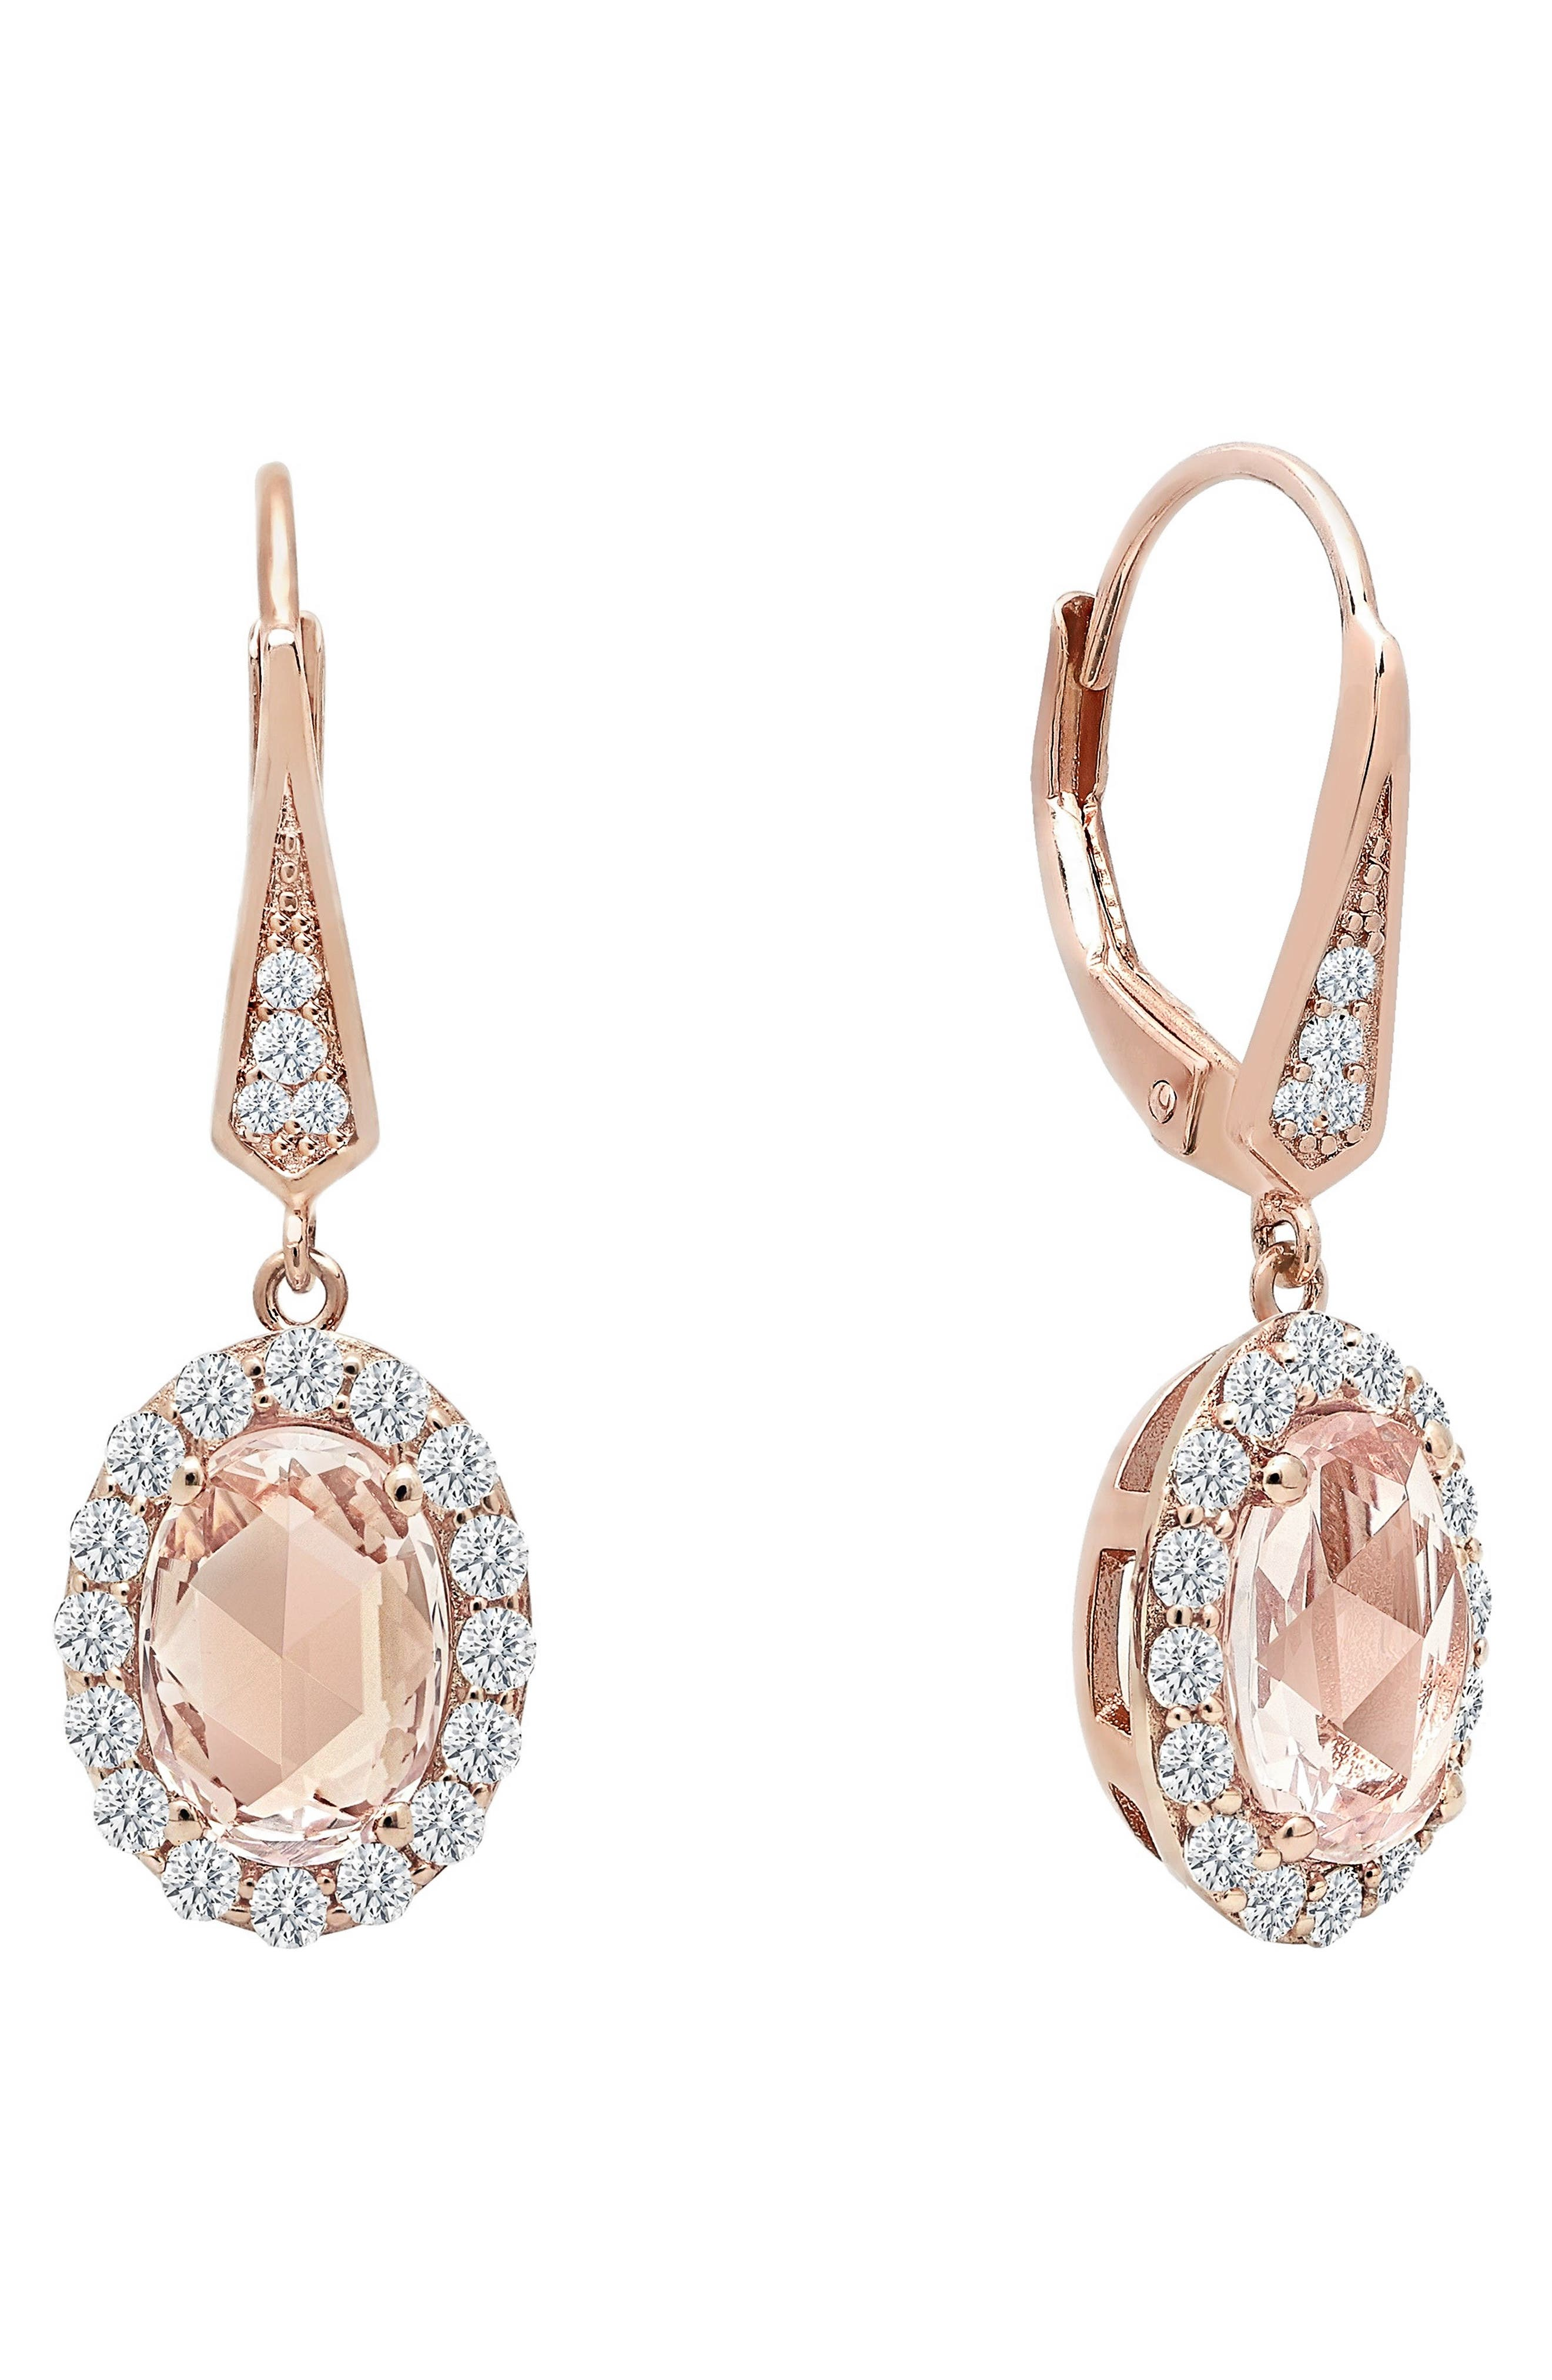 Simulated Diamond Drop Earrings,                         Main,                         color, Pink / Rose Gold